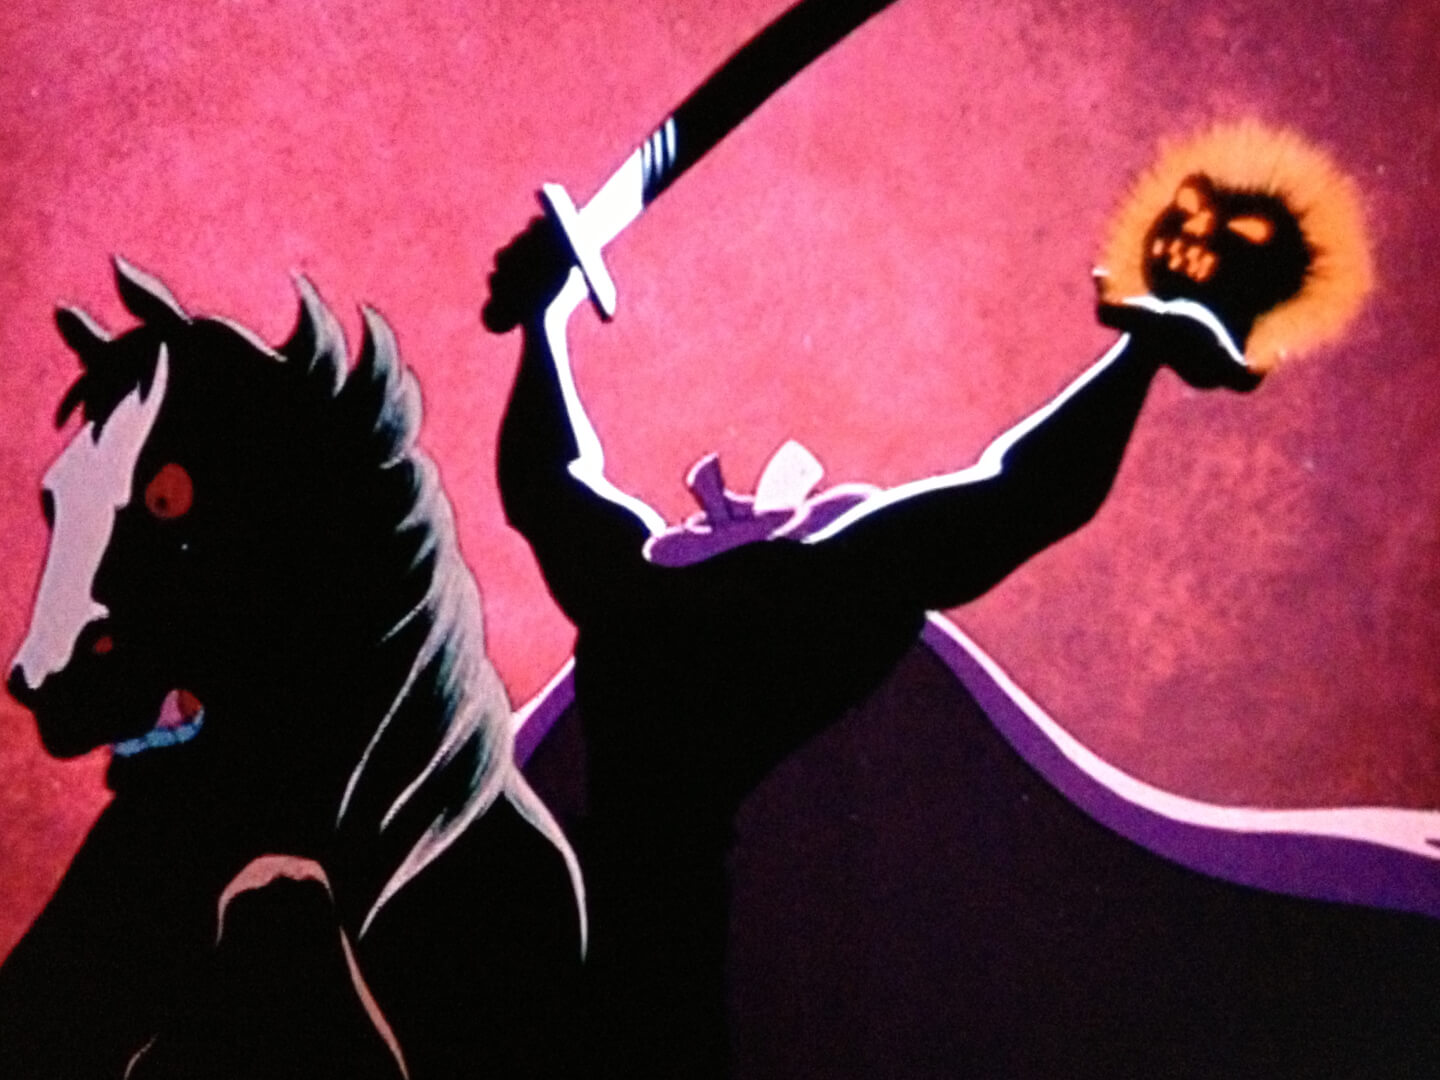 """The Legend of Sleepy Hollow"" screening, Headless Horseman ... Disney Headless Horseman"